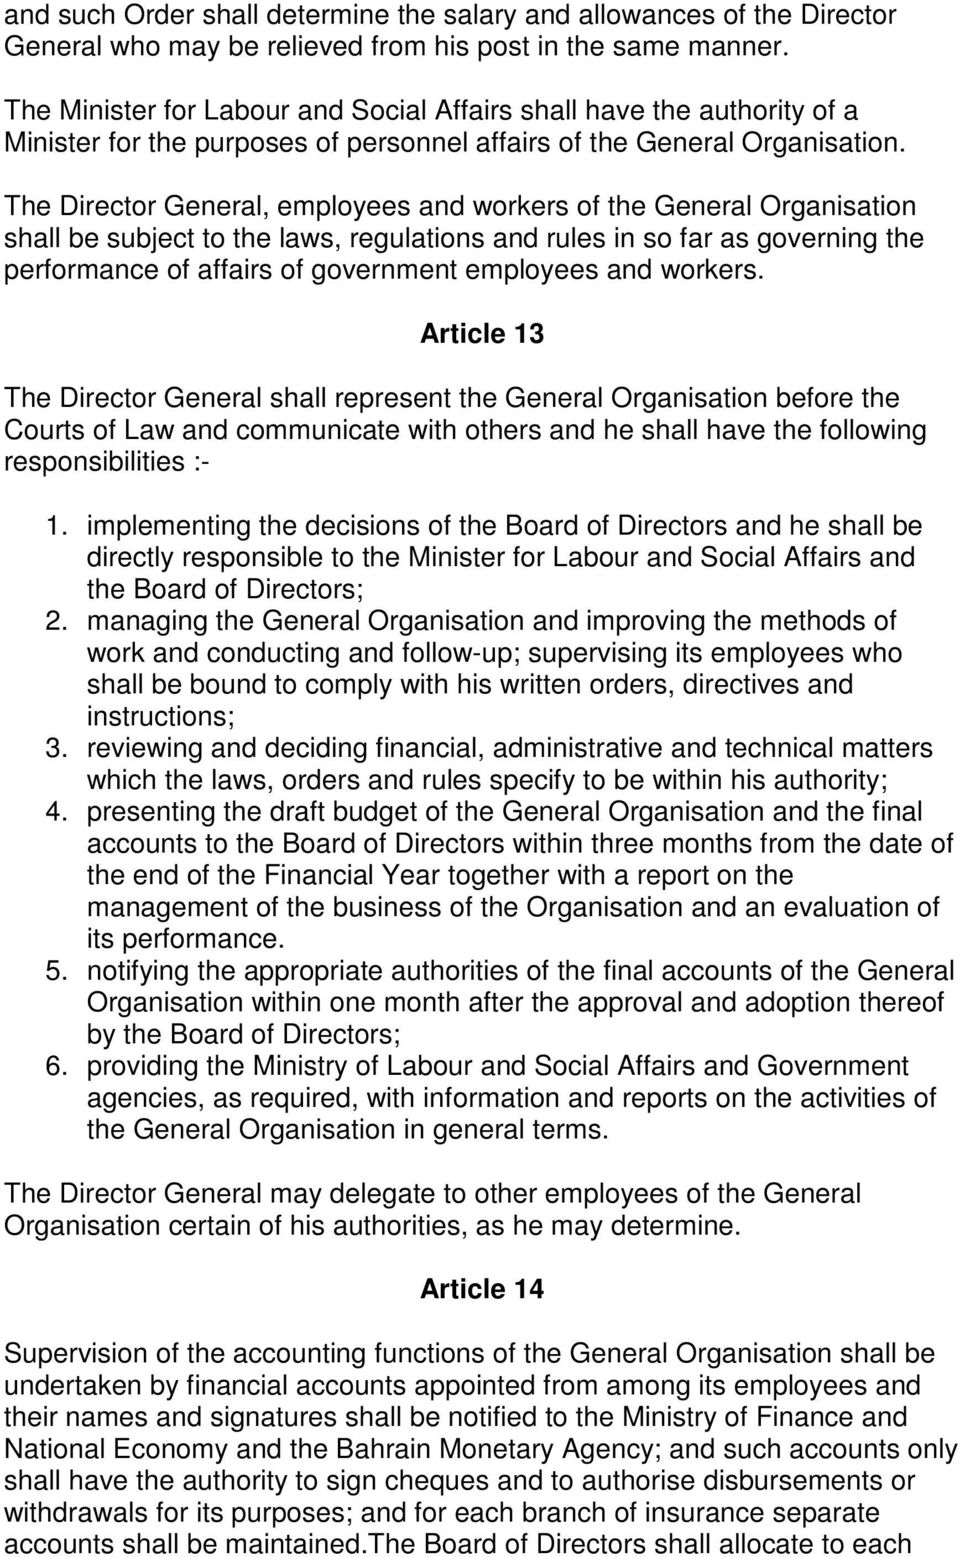 The Director General, employees and workers of the General Organisation shall be subject to the laws, regulations and rules in so far as governing the performance of affairs of government employees